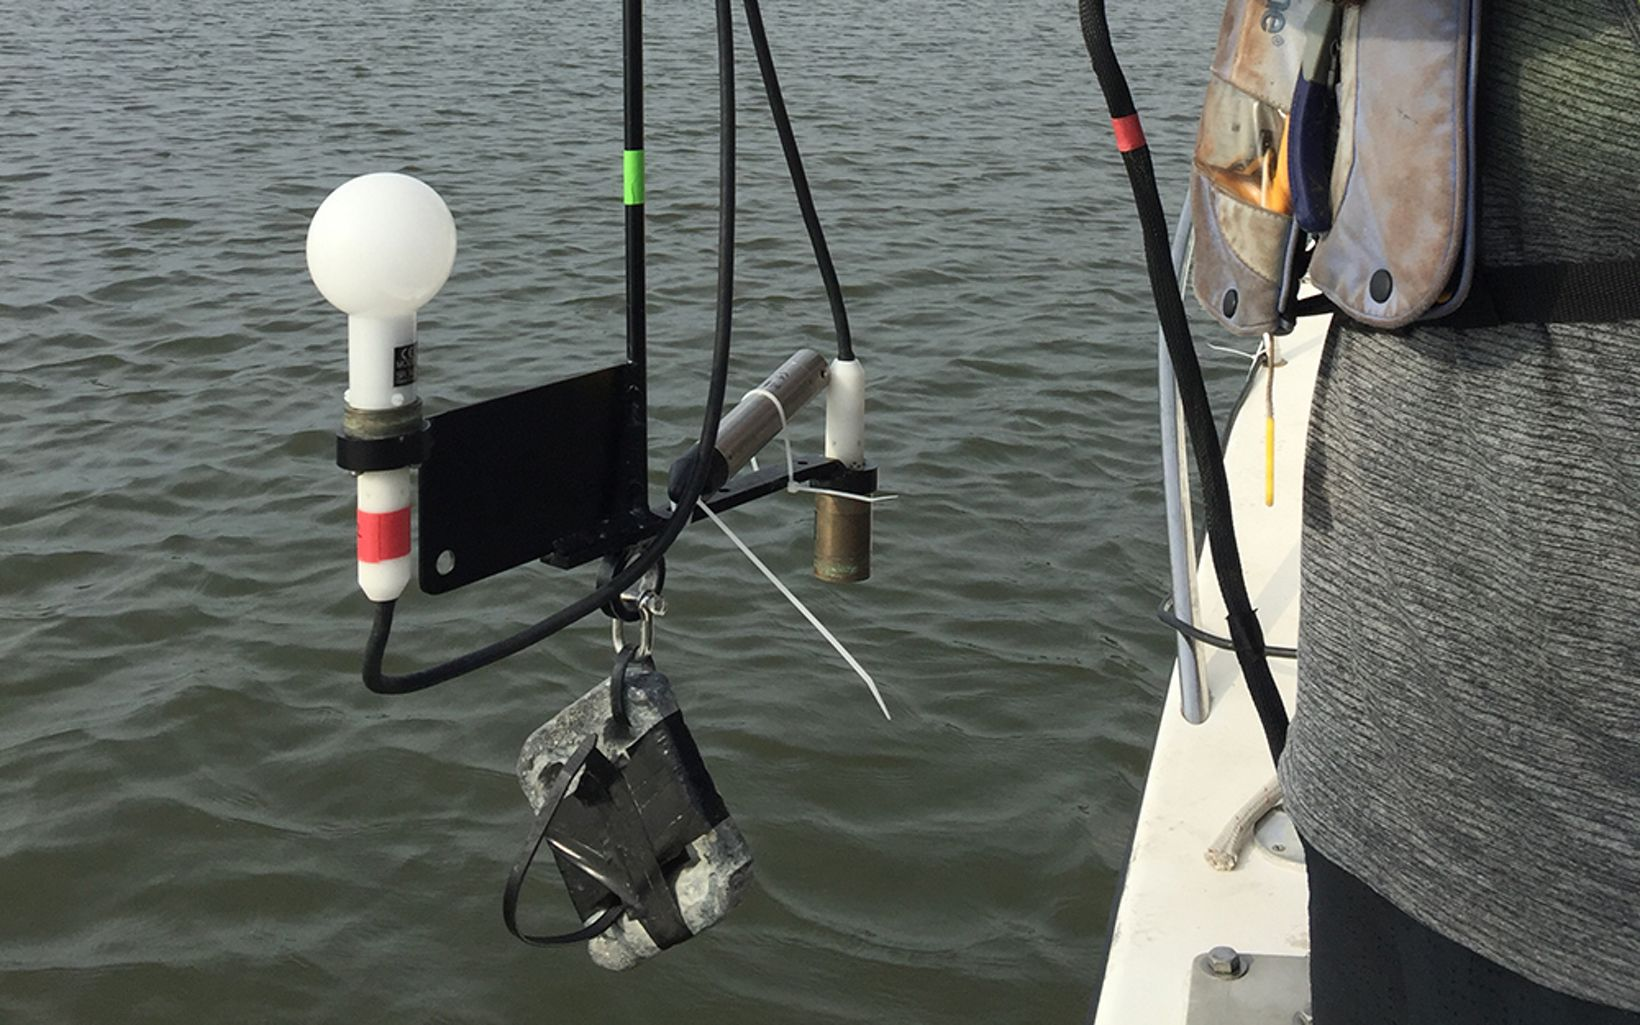 Scientists lower this sensor over the side of the boat to determine both how much light is being absorbed and how much is being scattered by particles in the water.